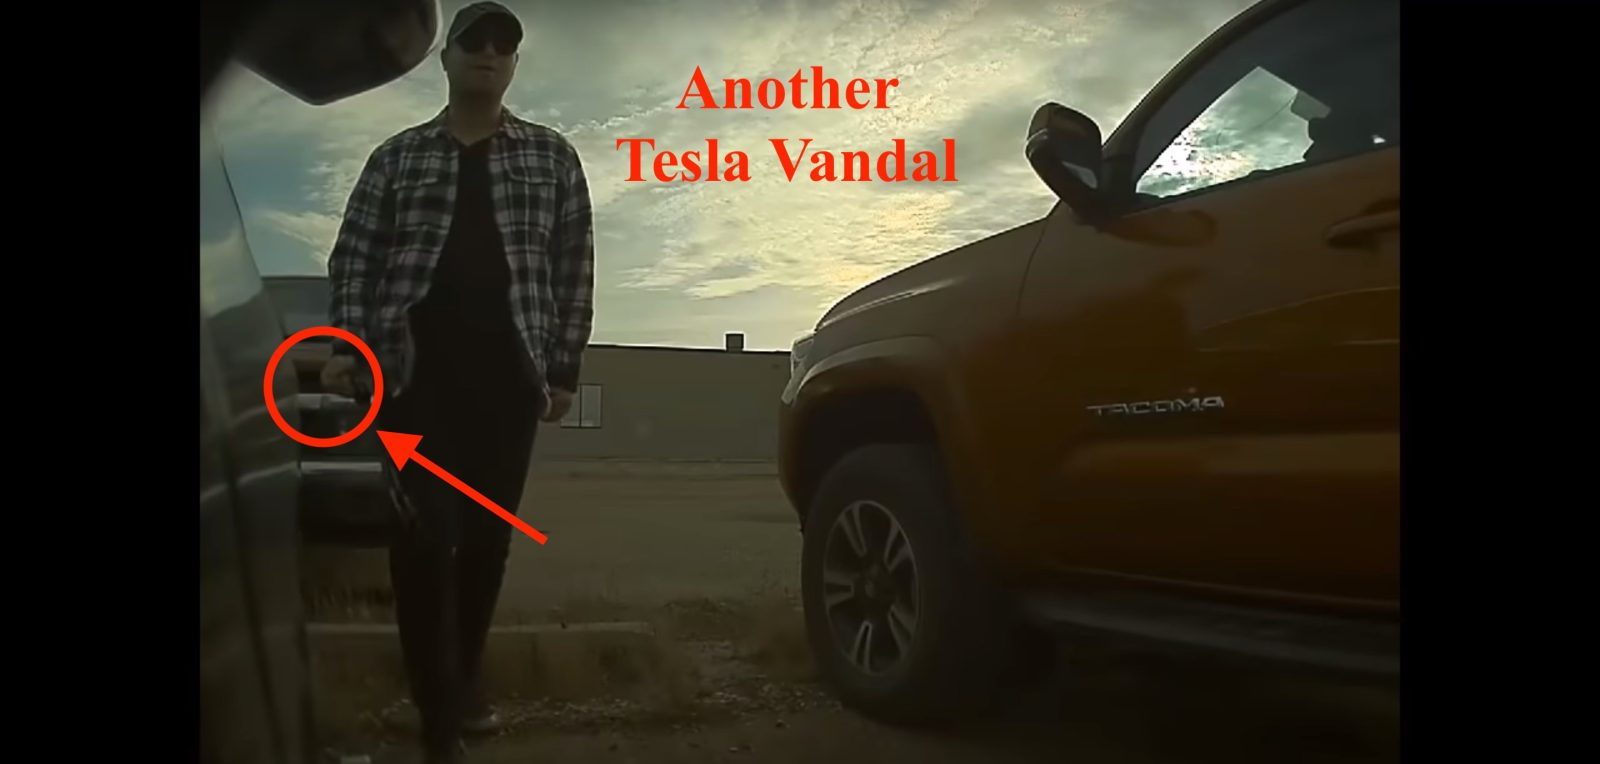 Tesla vandal turns himself in after seeing Sentry Mode video online